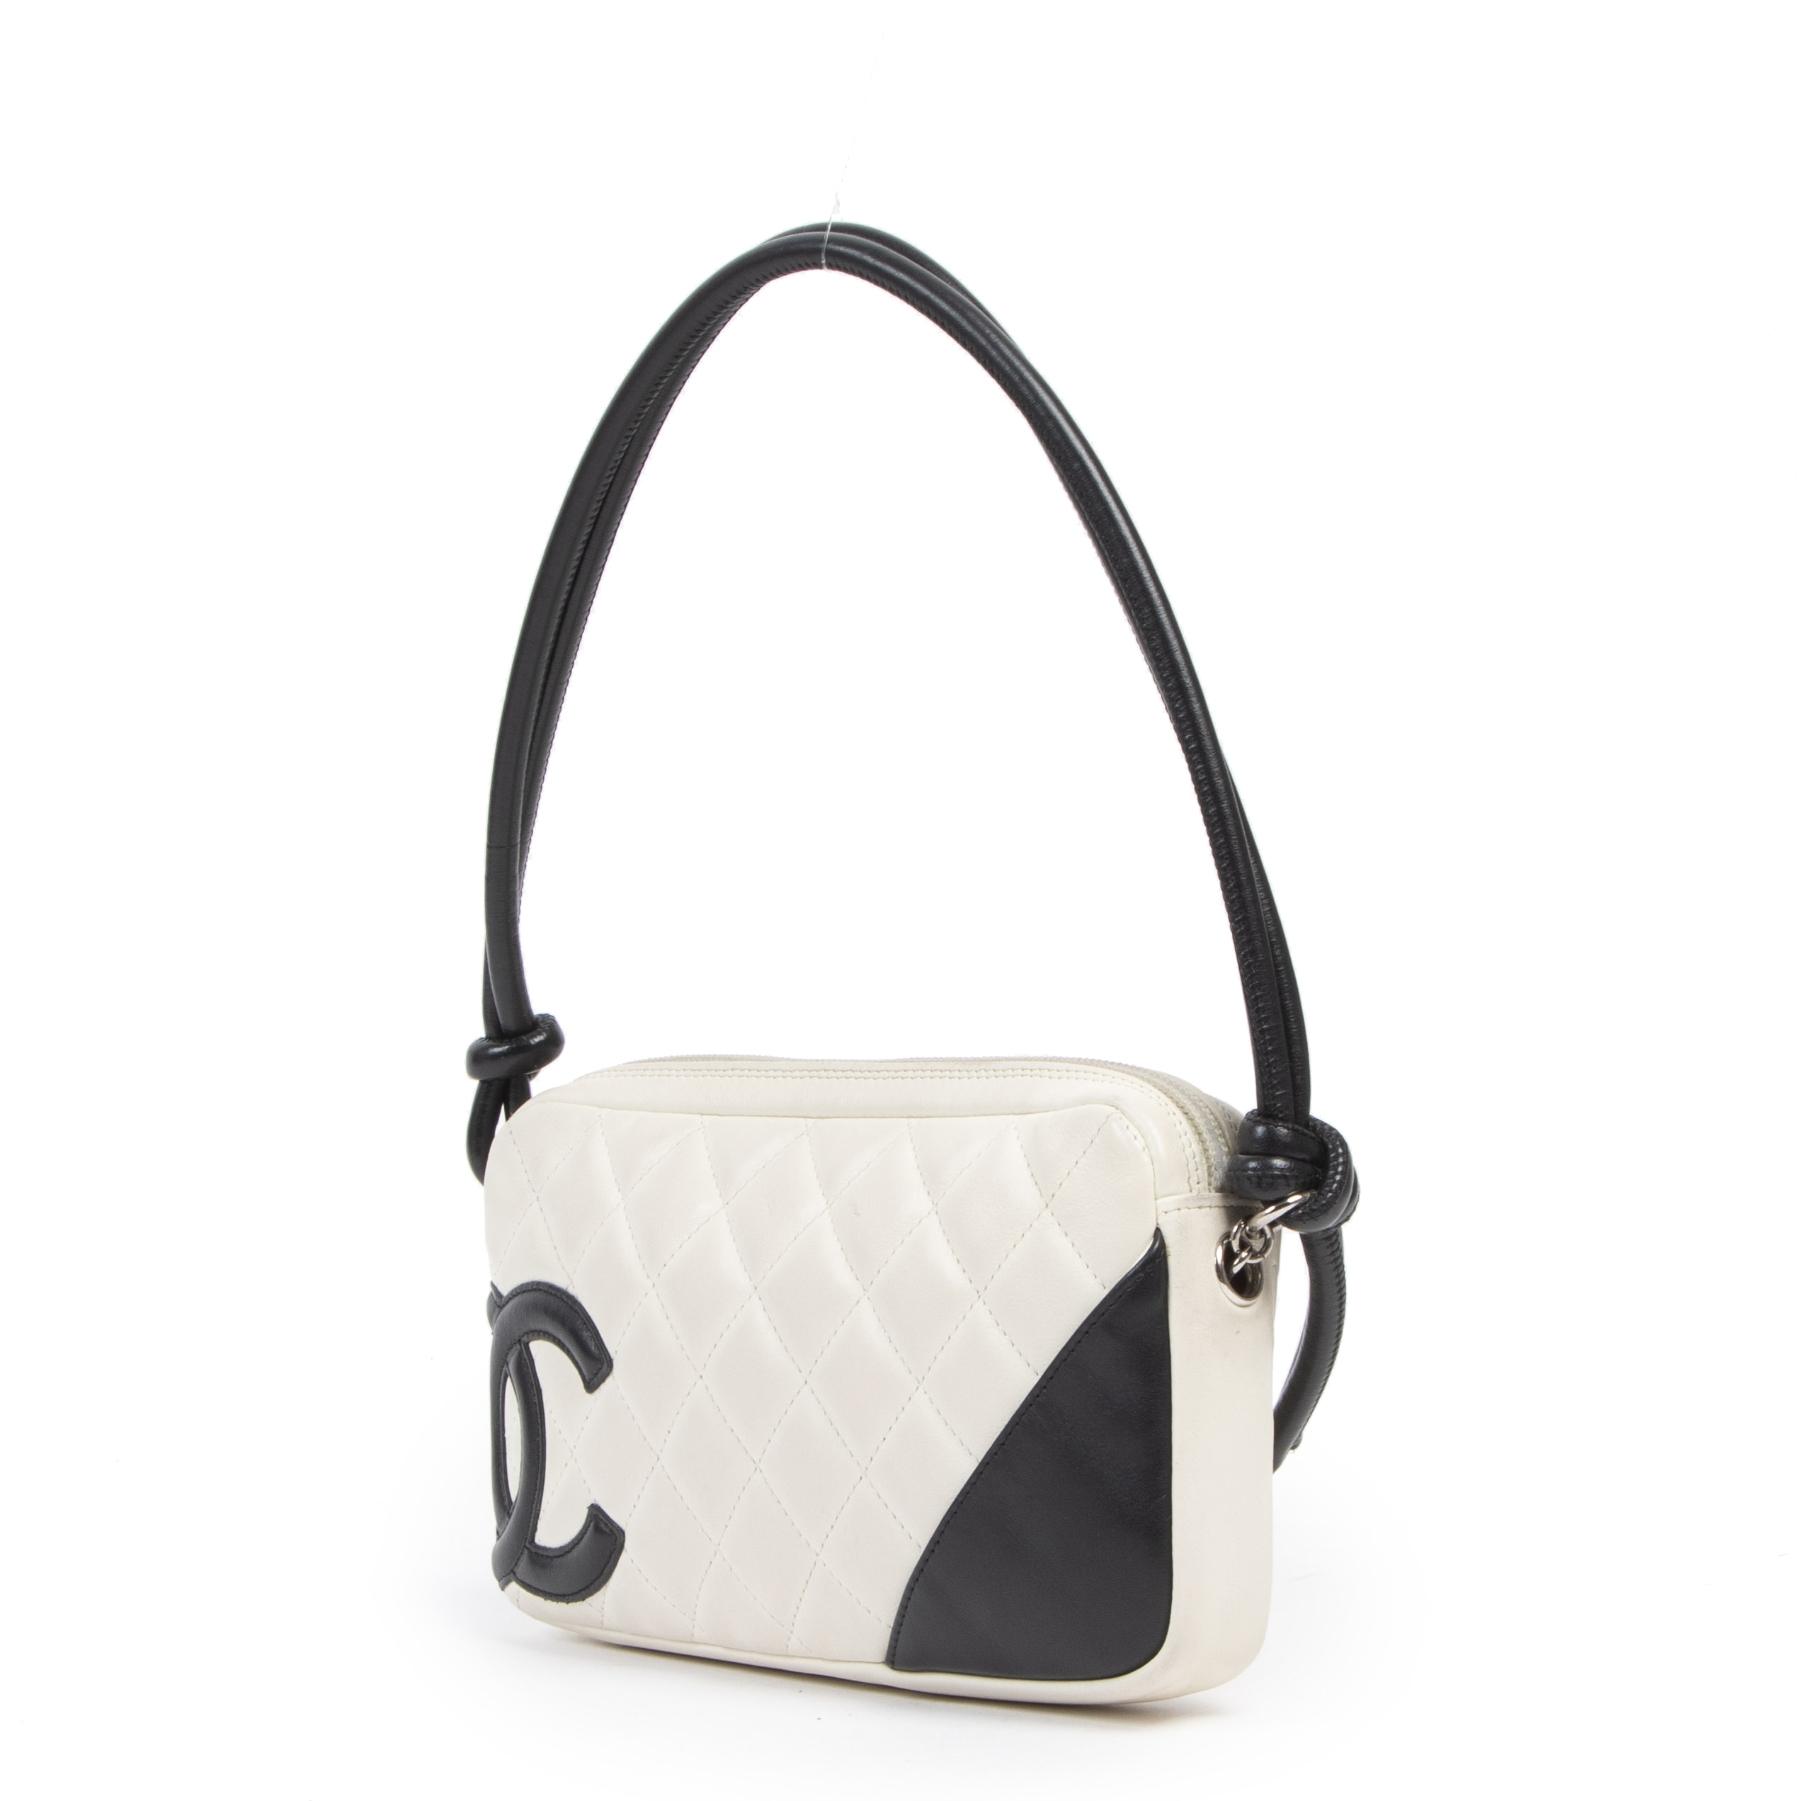 Authentic second-hand vintage Chanel White Cambon Pochette buy online webshop LabelLOV